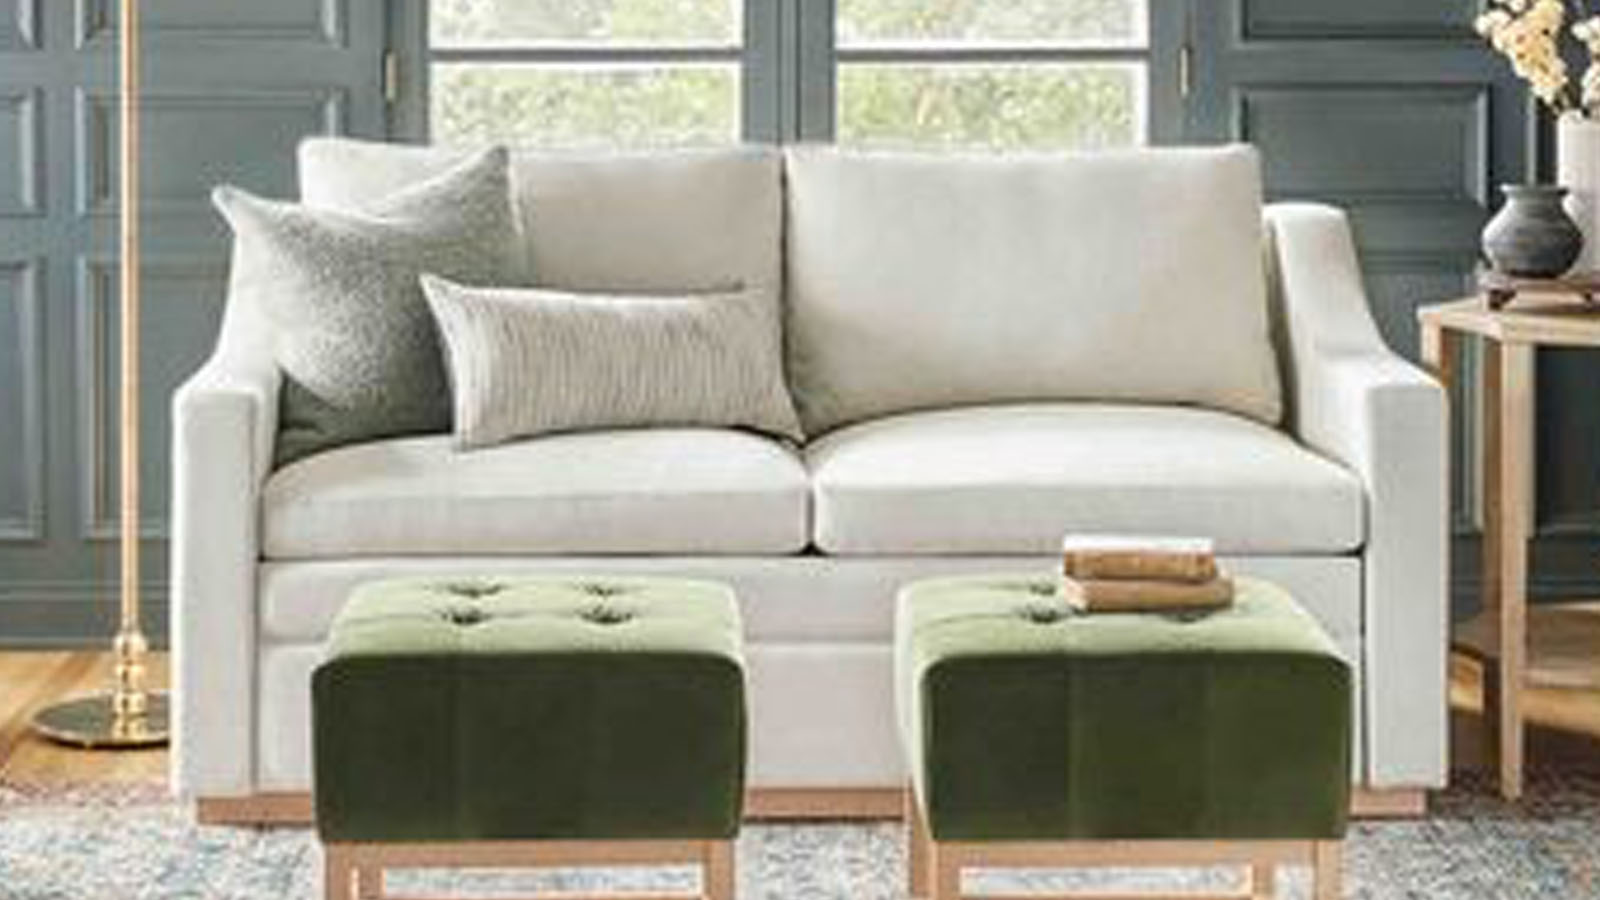 Labor Day Furniture Sales Cnn Underscored